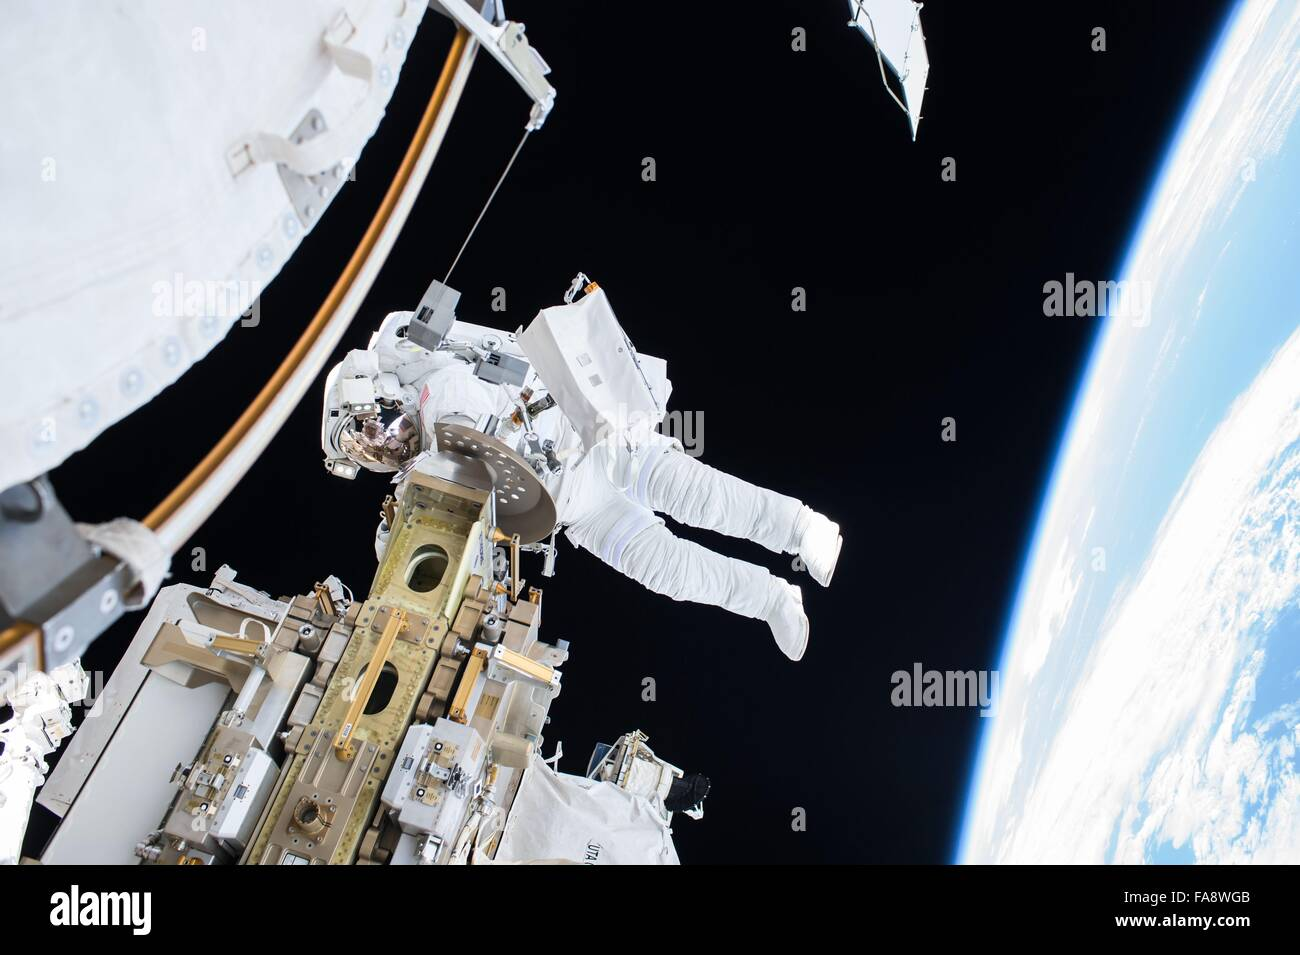 American astronaut Scott Kelly during a 3-hour space walk outside the International Space Station December 21, 2015 - Stock Image